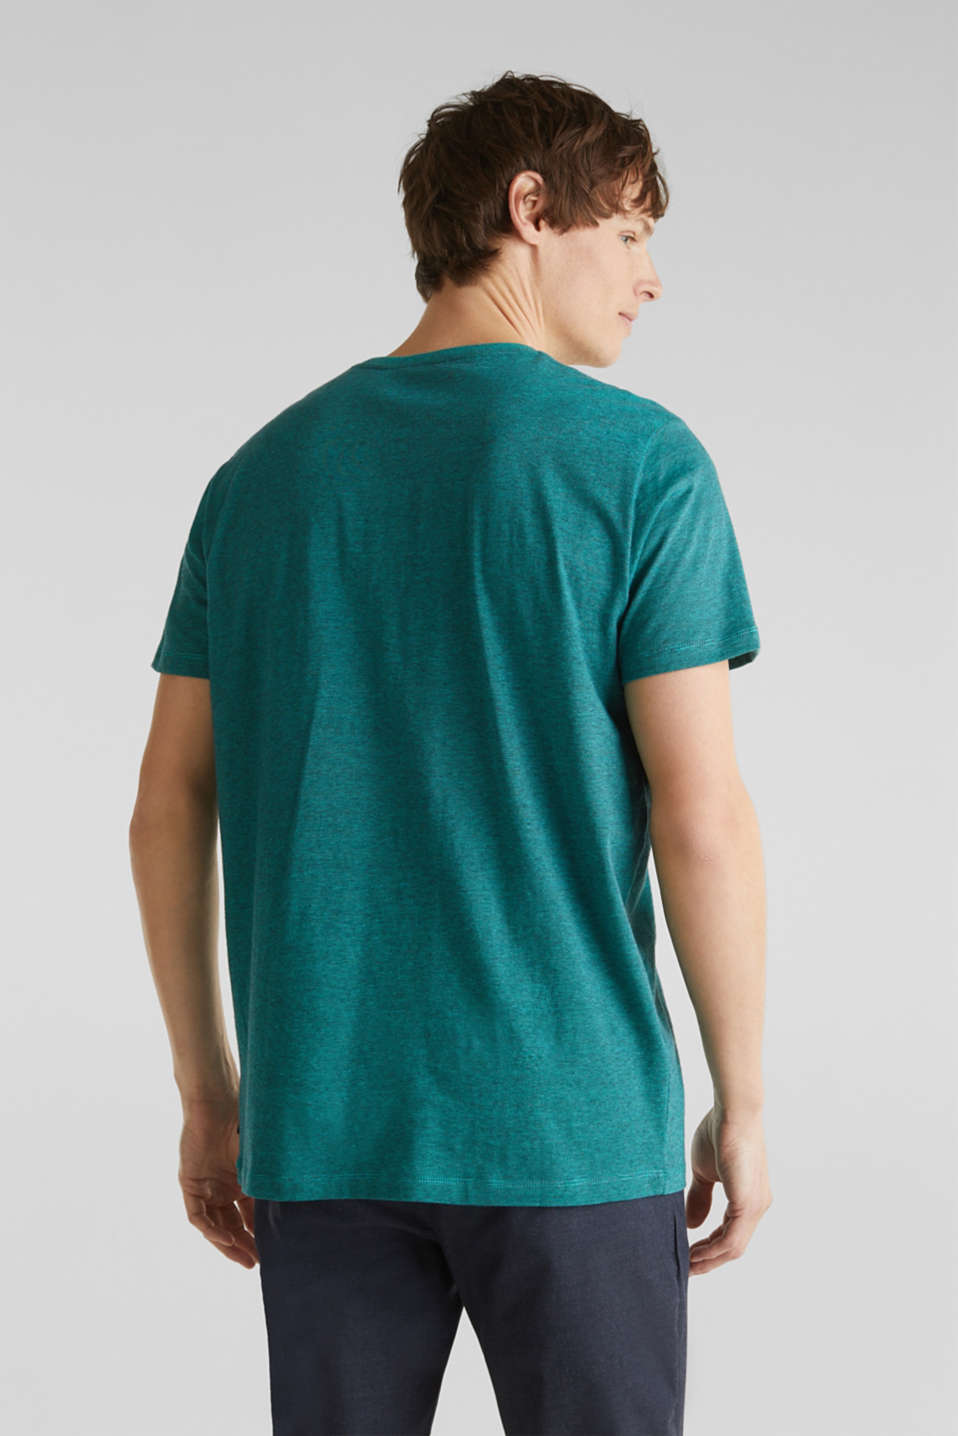 Jersey top, 100% organic cotton, LIGHT TURQUOISE 3, detail image number 2